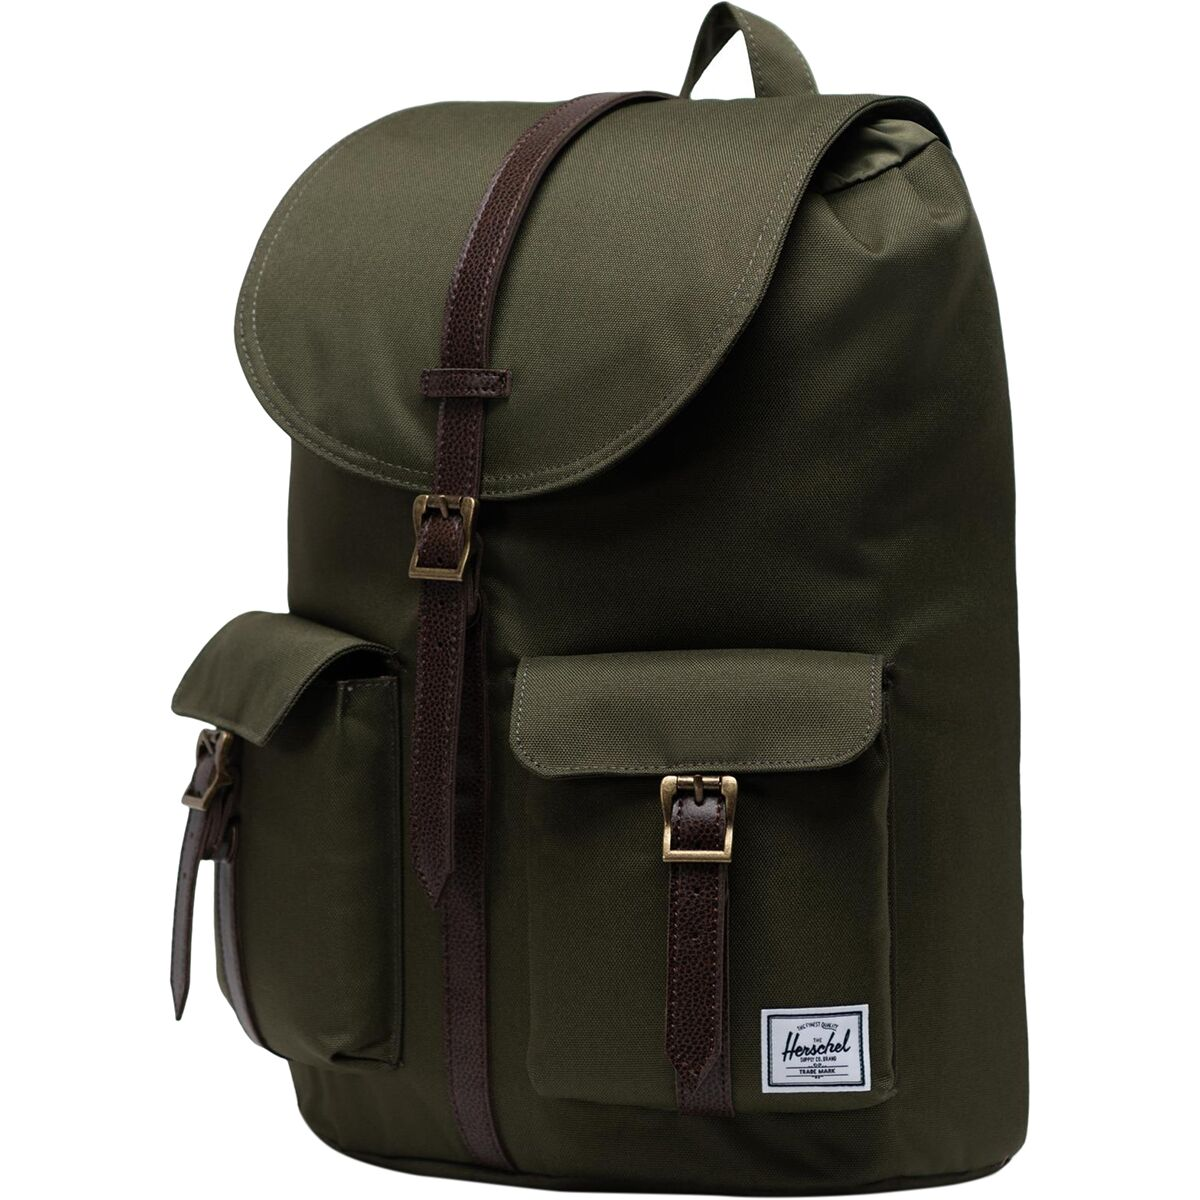 Herschel Dawson Backpack Black//Tan Synthetic Leather Classic 20.5L